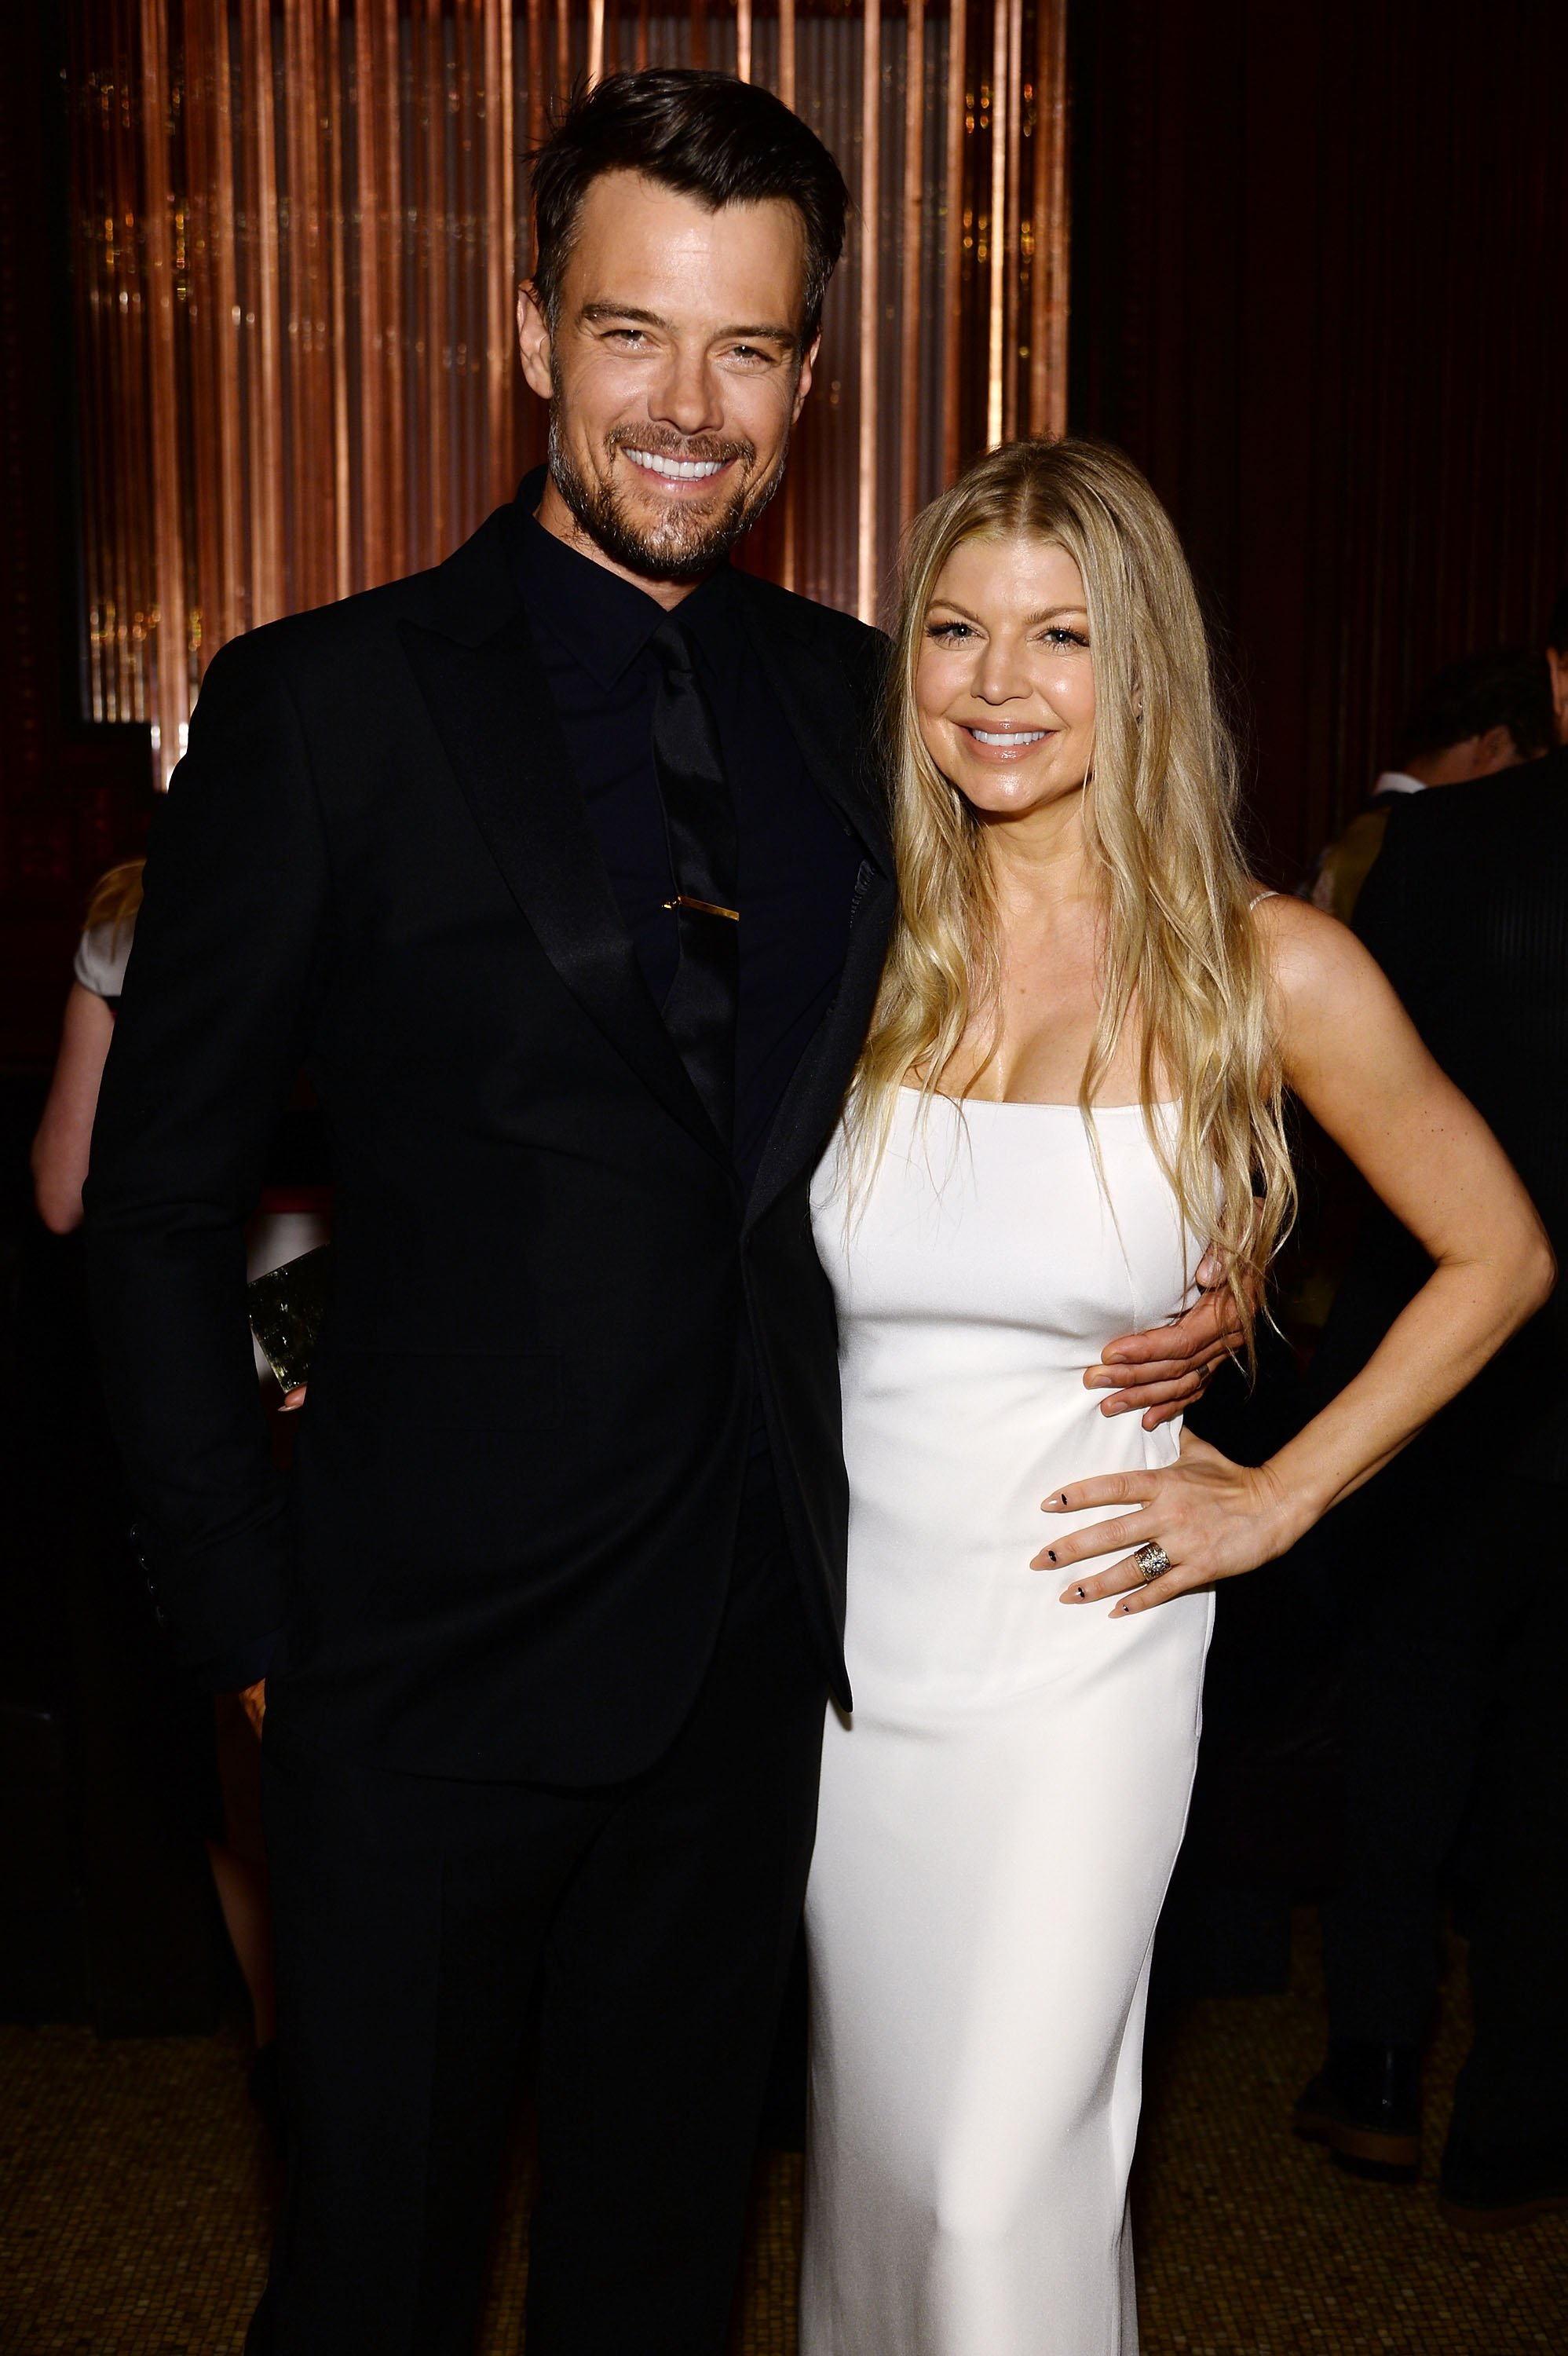 Fergie Duhamel and Josh Duhamel attend the amfAR Inspiration Gala New York 2014 at The Plaza Hotel on June 10, 2014, in New York City. | Source: Getty Images.